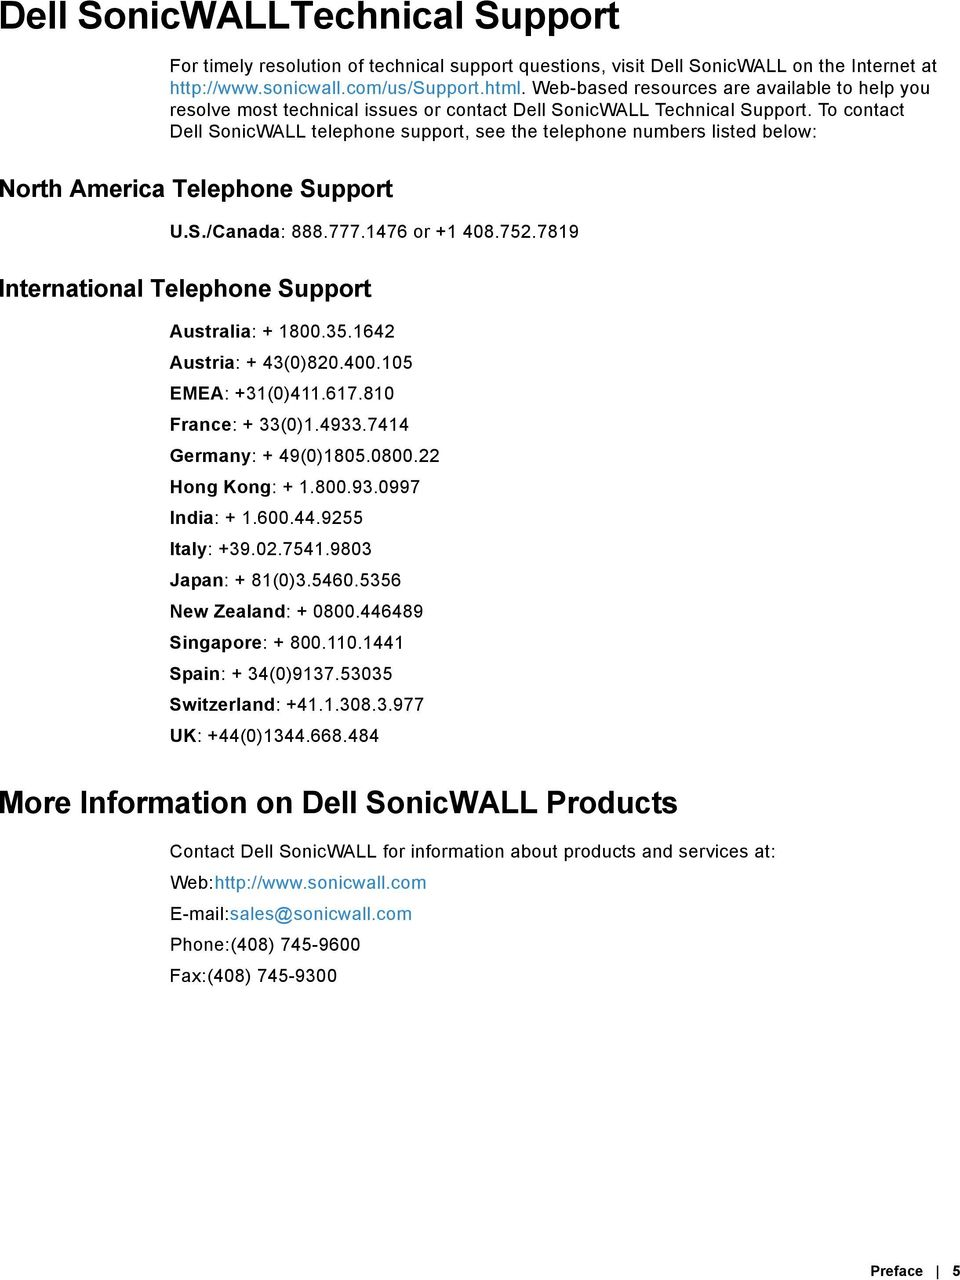 To contact Dell SonicWALL telephone support, see the telephone numbers listed below: North America Telephone Support U.S./Canada: 888.777.1476 or +1 408.752.